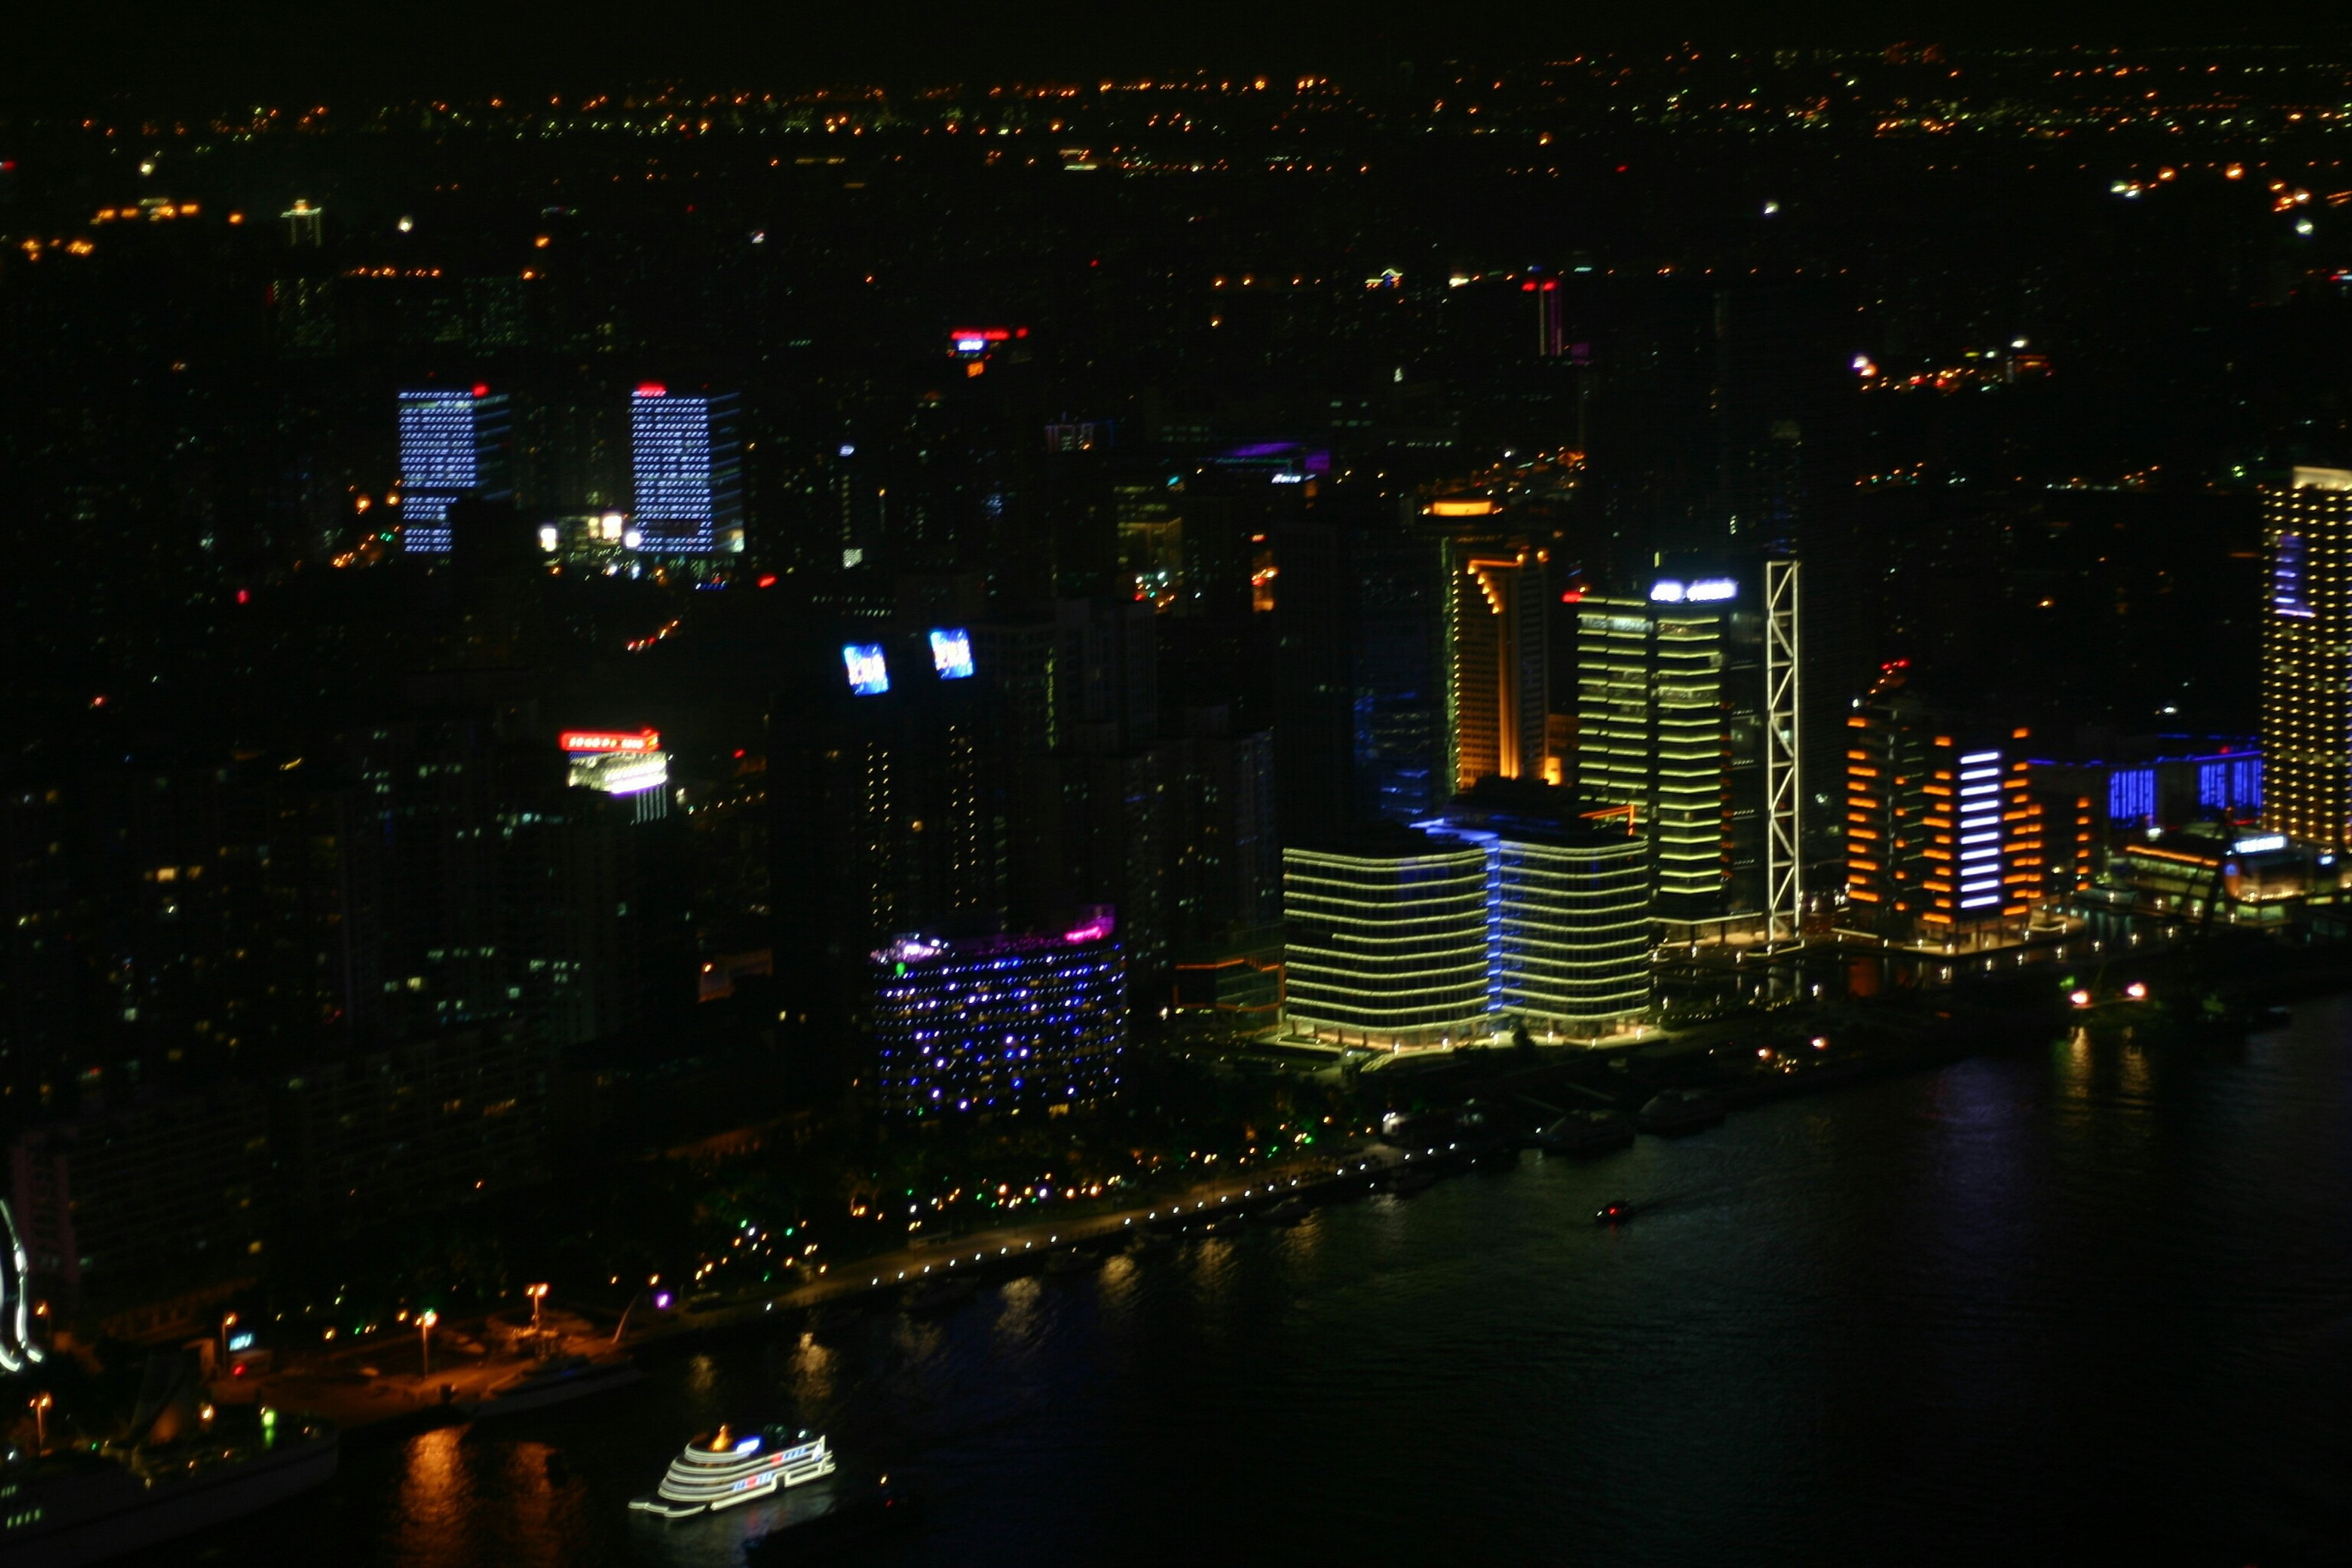 illuminated, night, city, building exterior, cityscape, architecture, built structure, skyscraper, water, crowded, reflection, river, waterfront, residential district, residential building, modern, office building, city life, high angle view, residential structure